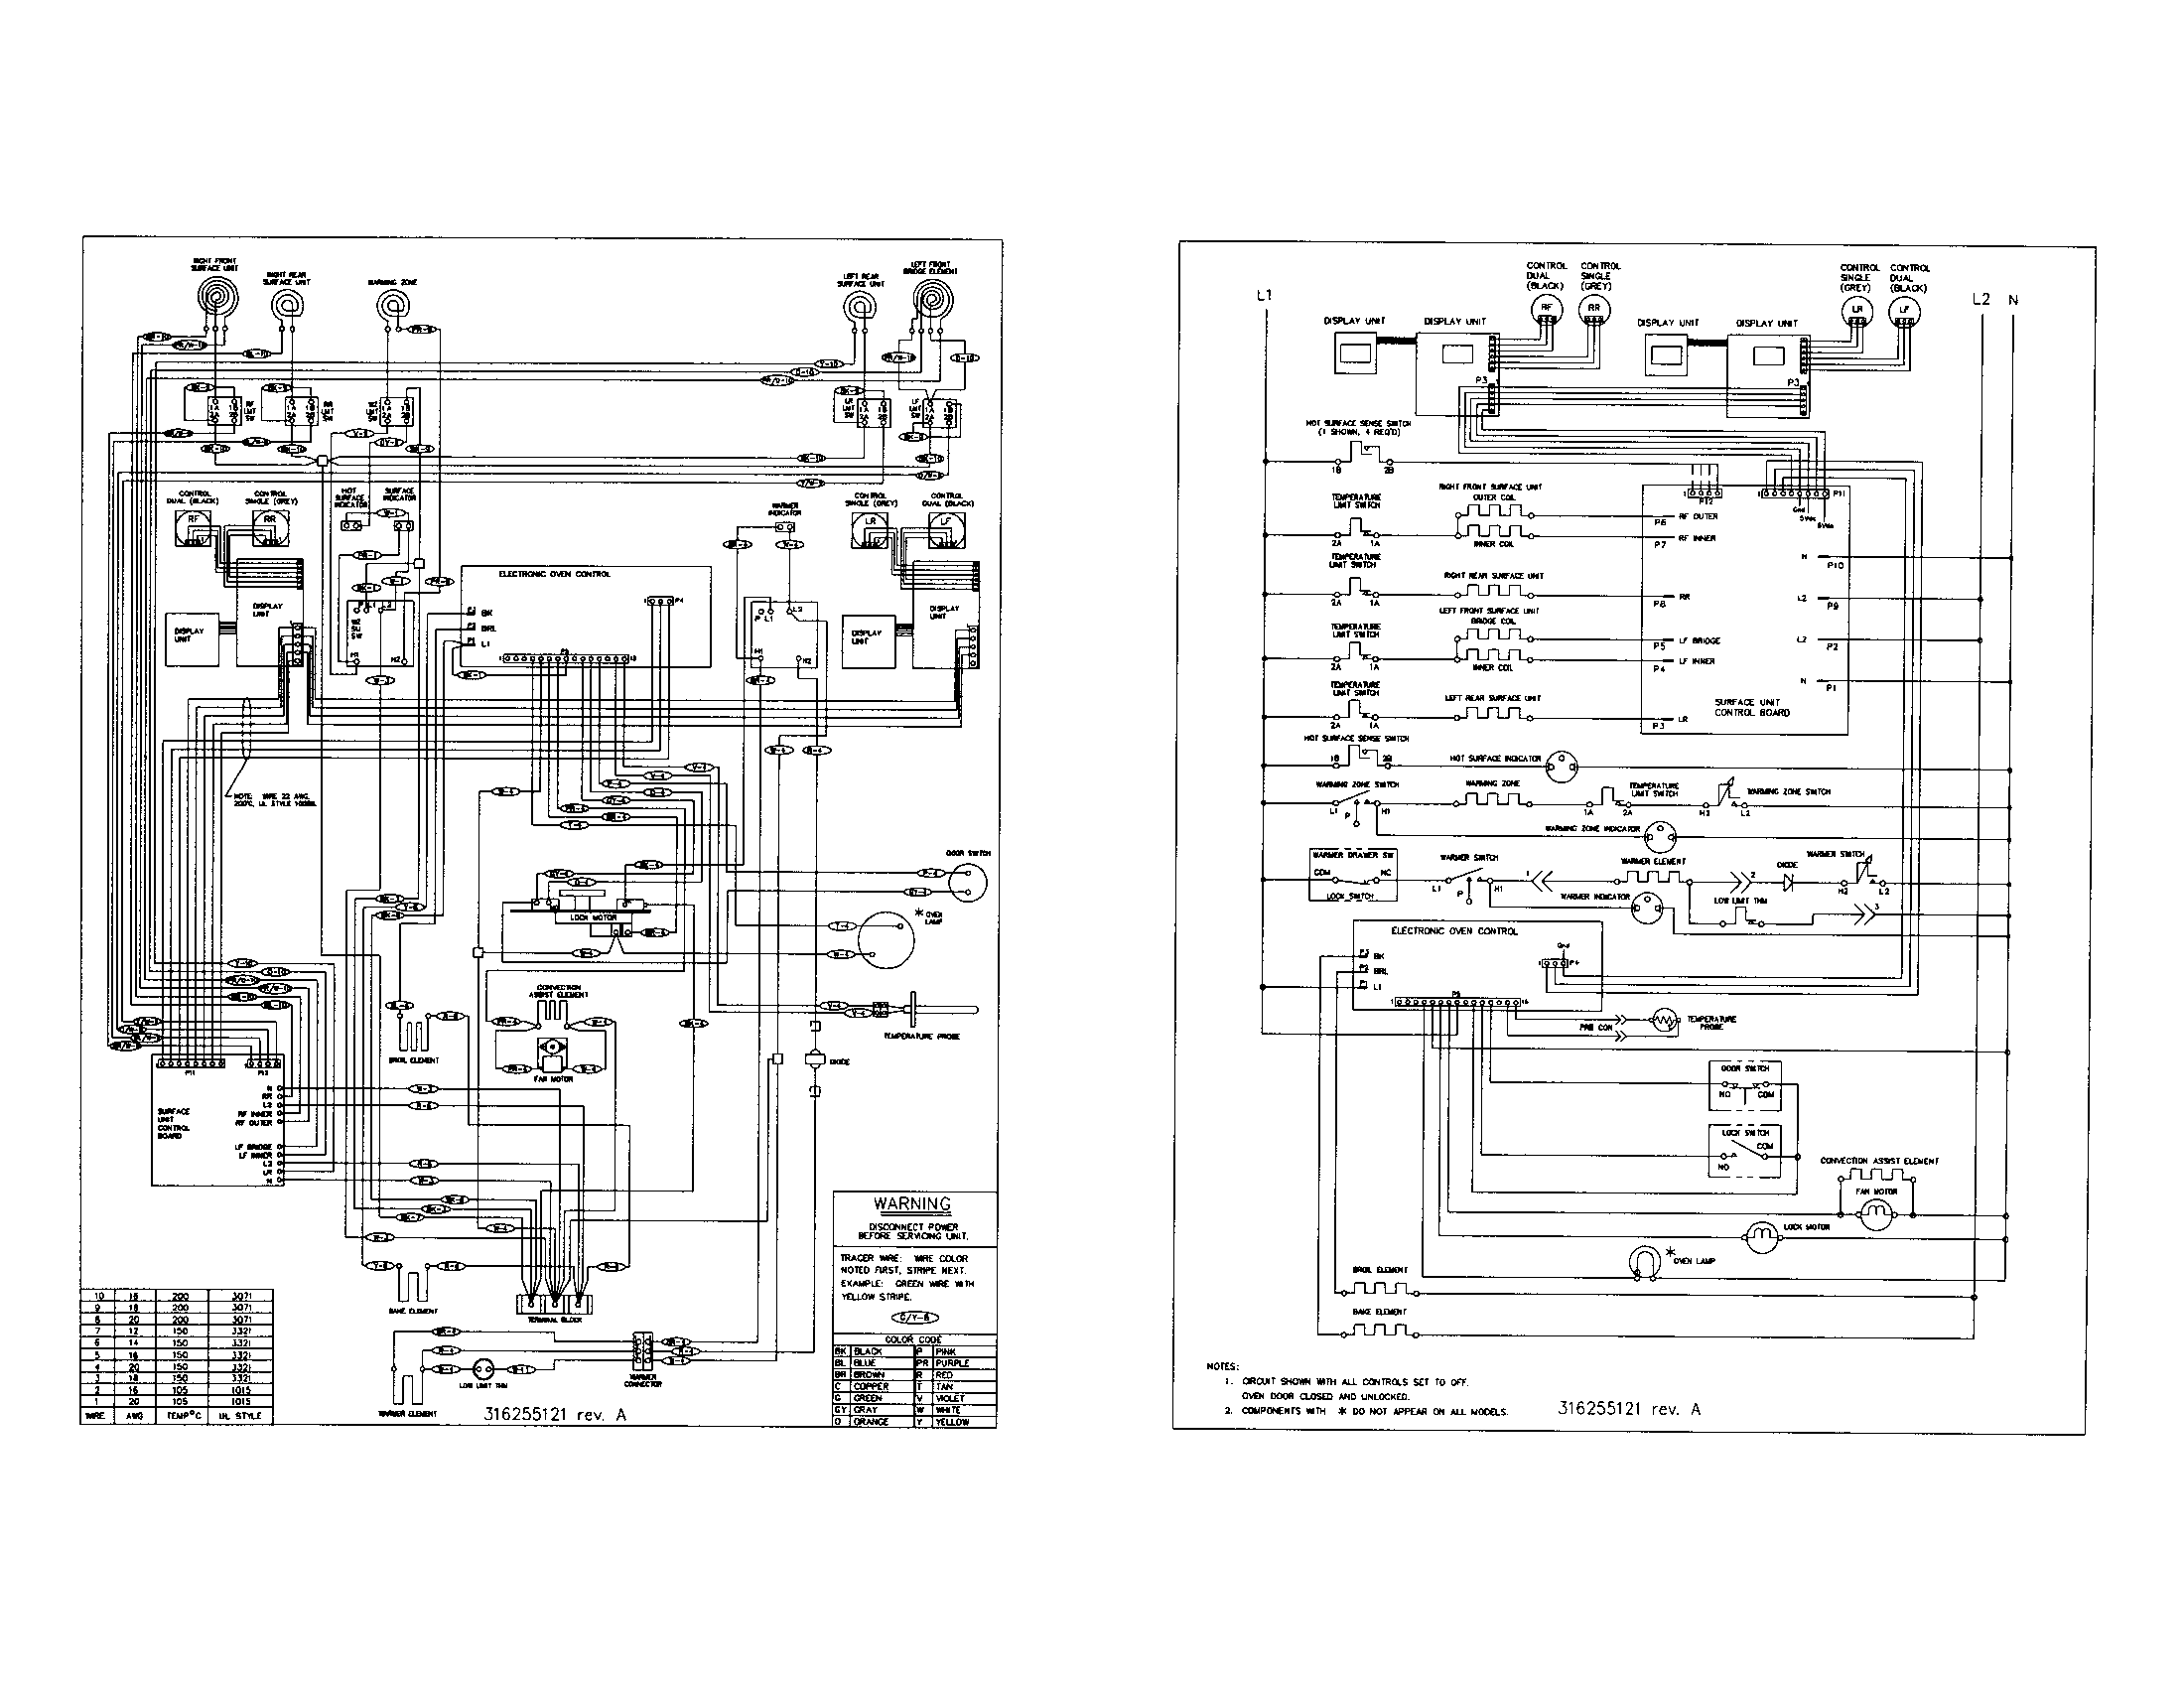 wiring diagram parts?resize\\\\\\\\\\\\\\\\\\\\\\\\\\\\\\\\\\\\\\\\\\\\\\\\\\\\\\\\\\\\\\\\\\\\\\\\\\\\\\\\\\\\\\\\\\\\\\\\\\\\\\\\\\\\\\\\\\\\\\\\\\\\\\\\\\\\\\\\\\\\\\\\\\\\\\\\\\\\\\\\\\\\\\\\\\\\\\\\\\\\\\\\\\\\\\\\\\\\\\\\\\\\\\\=840%2C648 replacing a mercury thermostat no letters the odd little happy on white rodgers mercury thermostat wiring diagram at soozxer.org